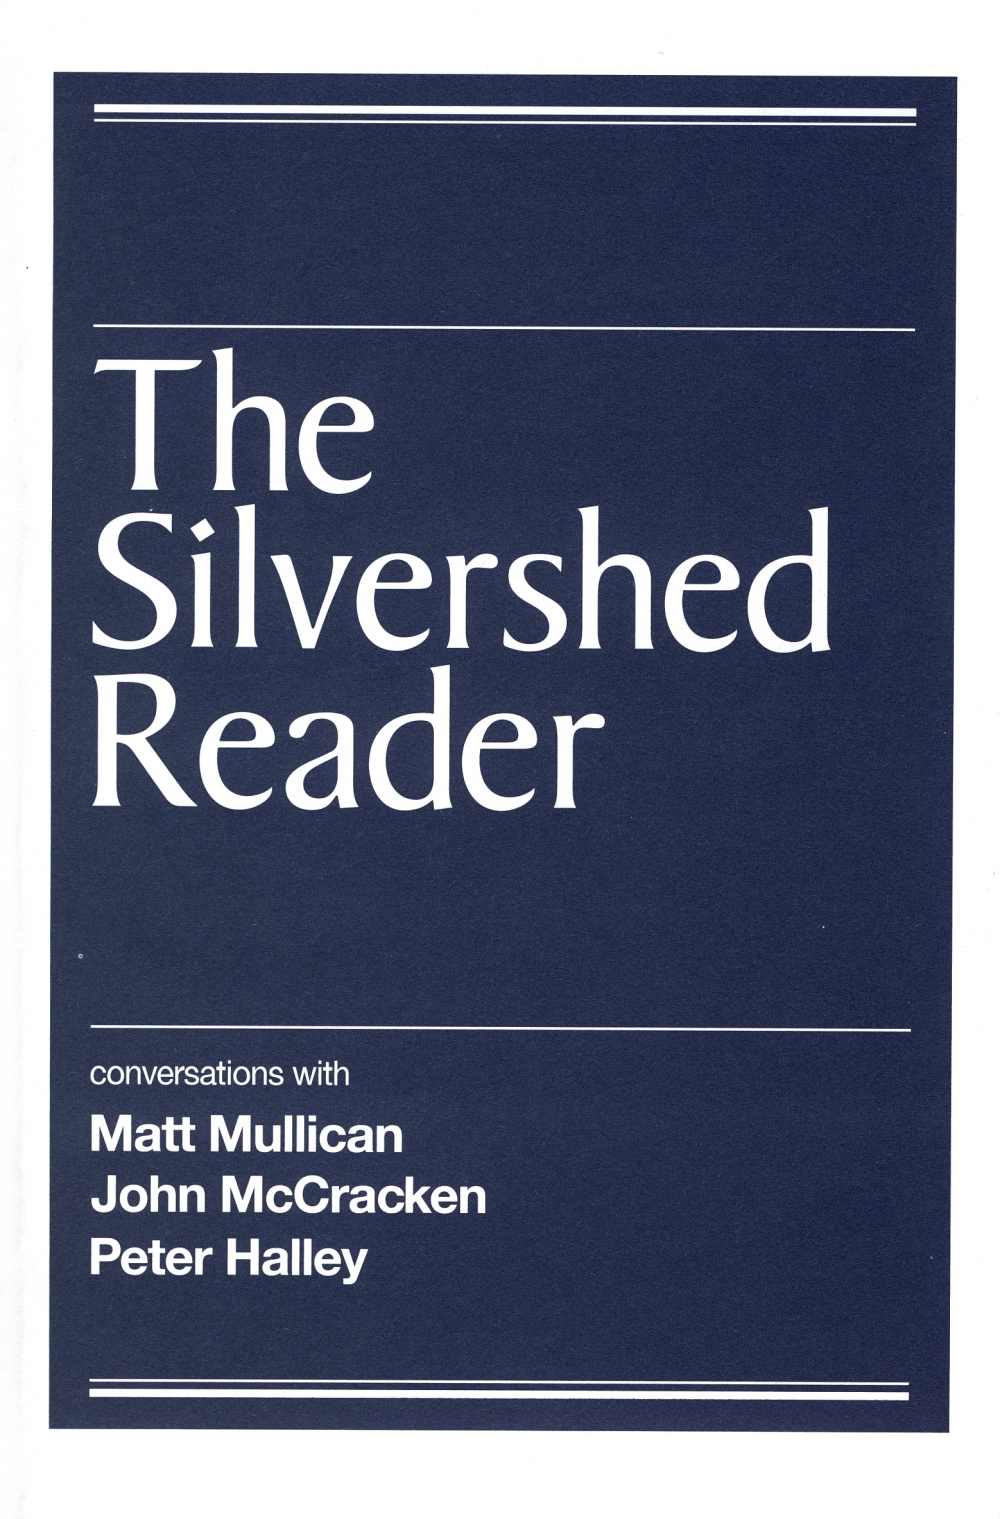 The Silvershed Reader